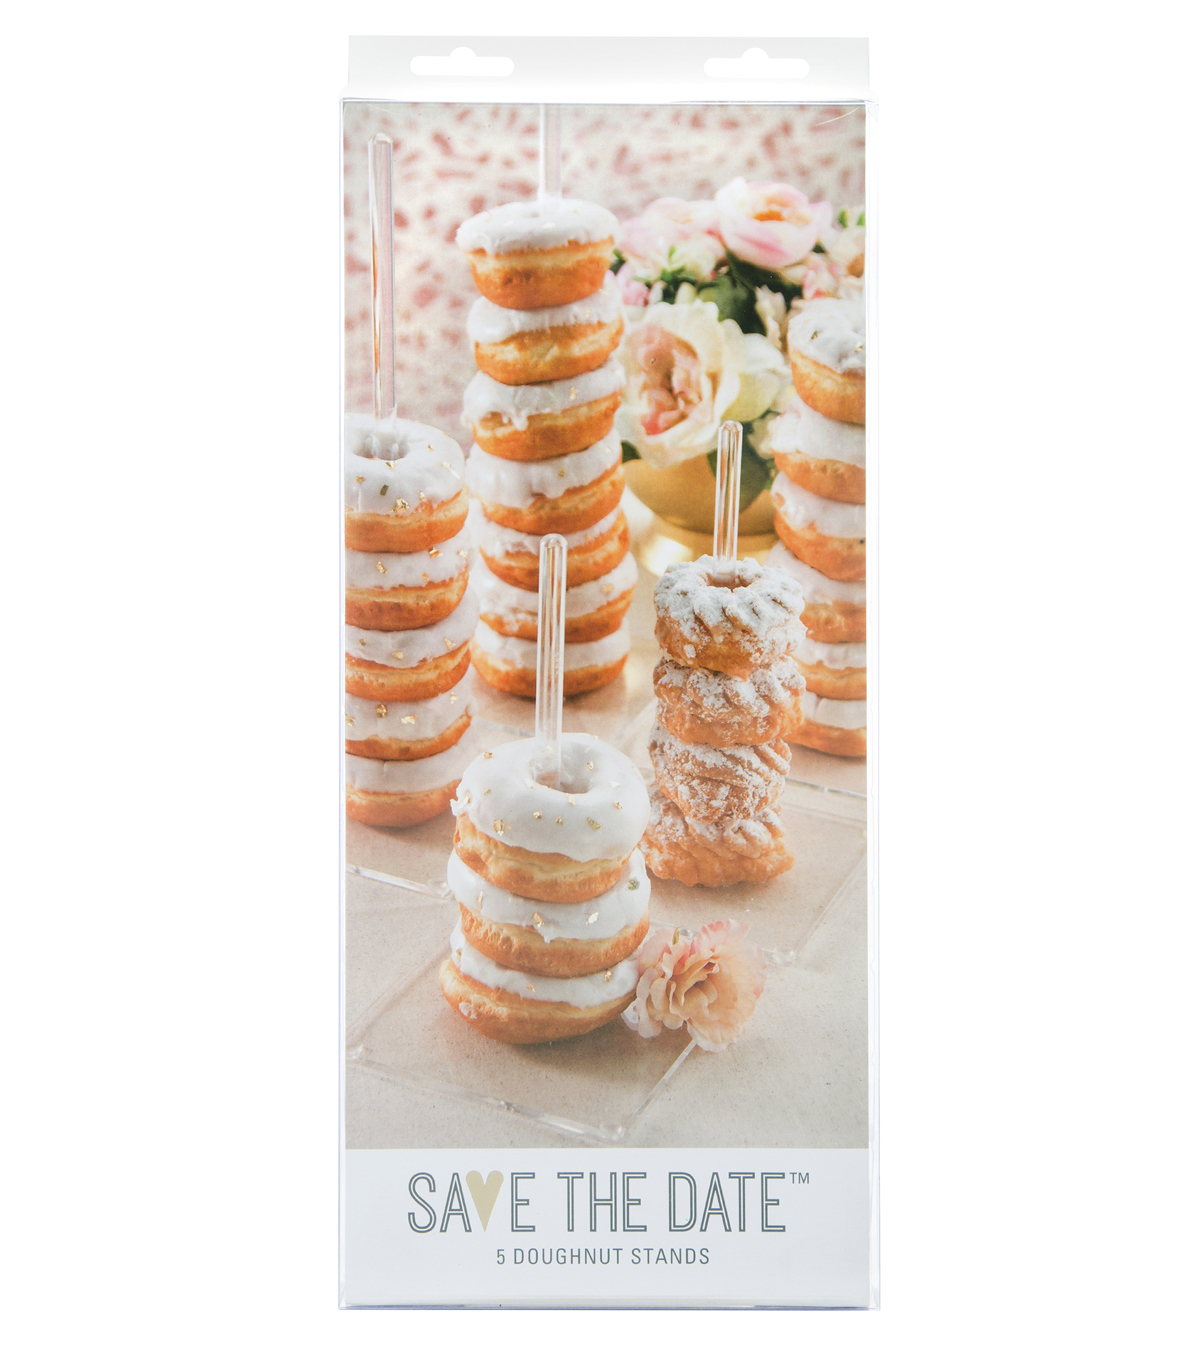 Save The Date Donut Stands